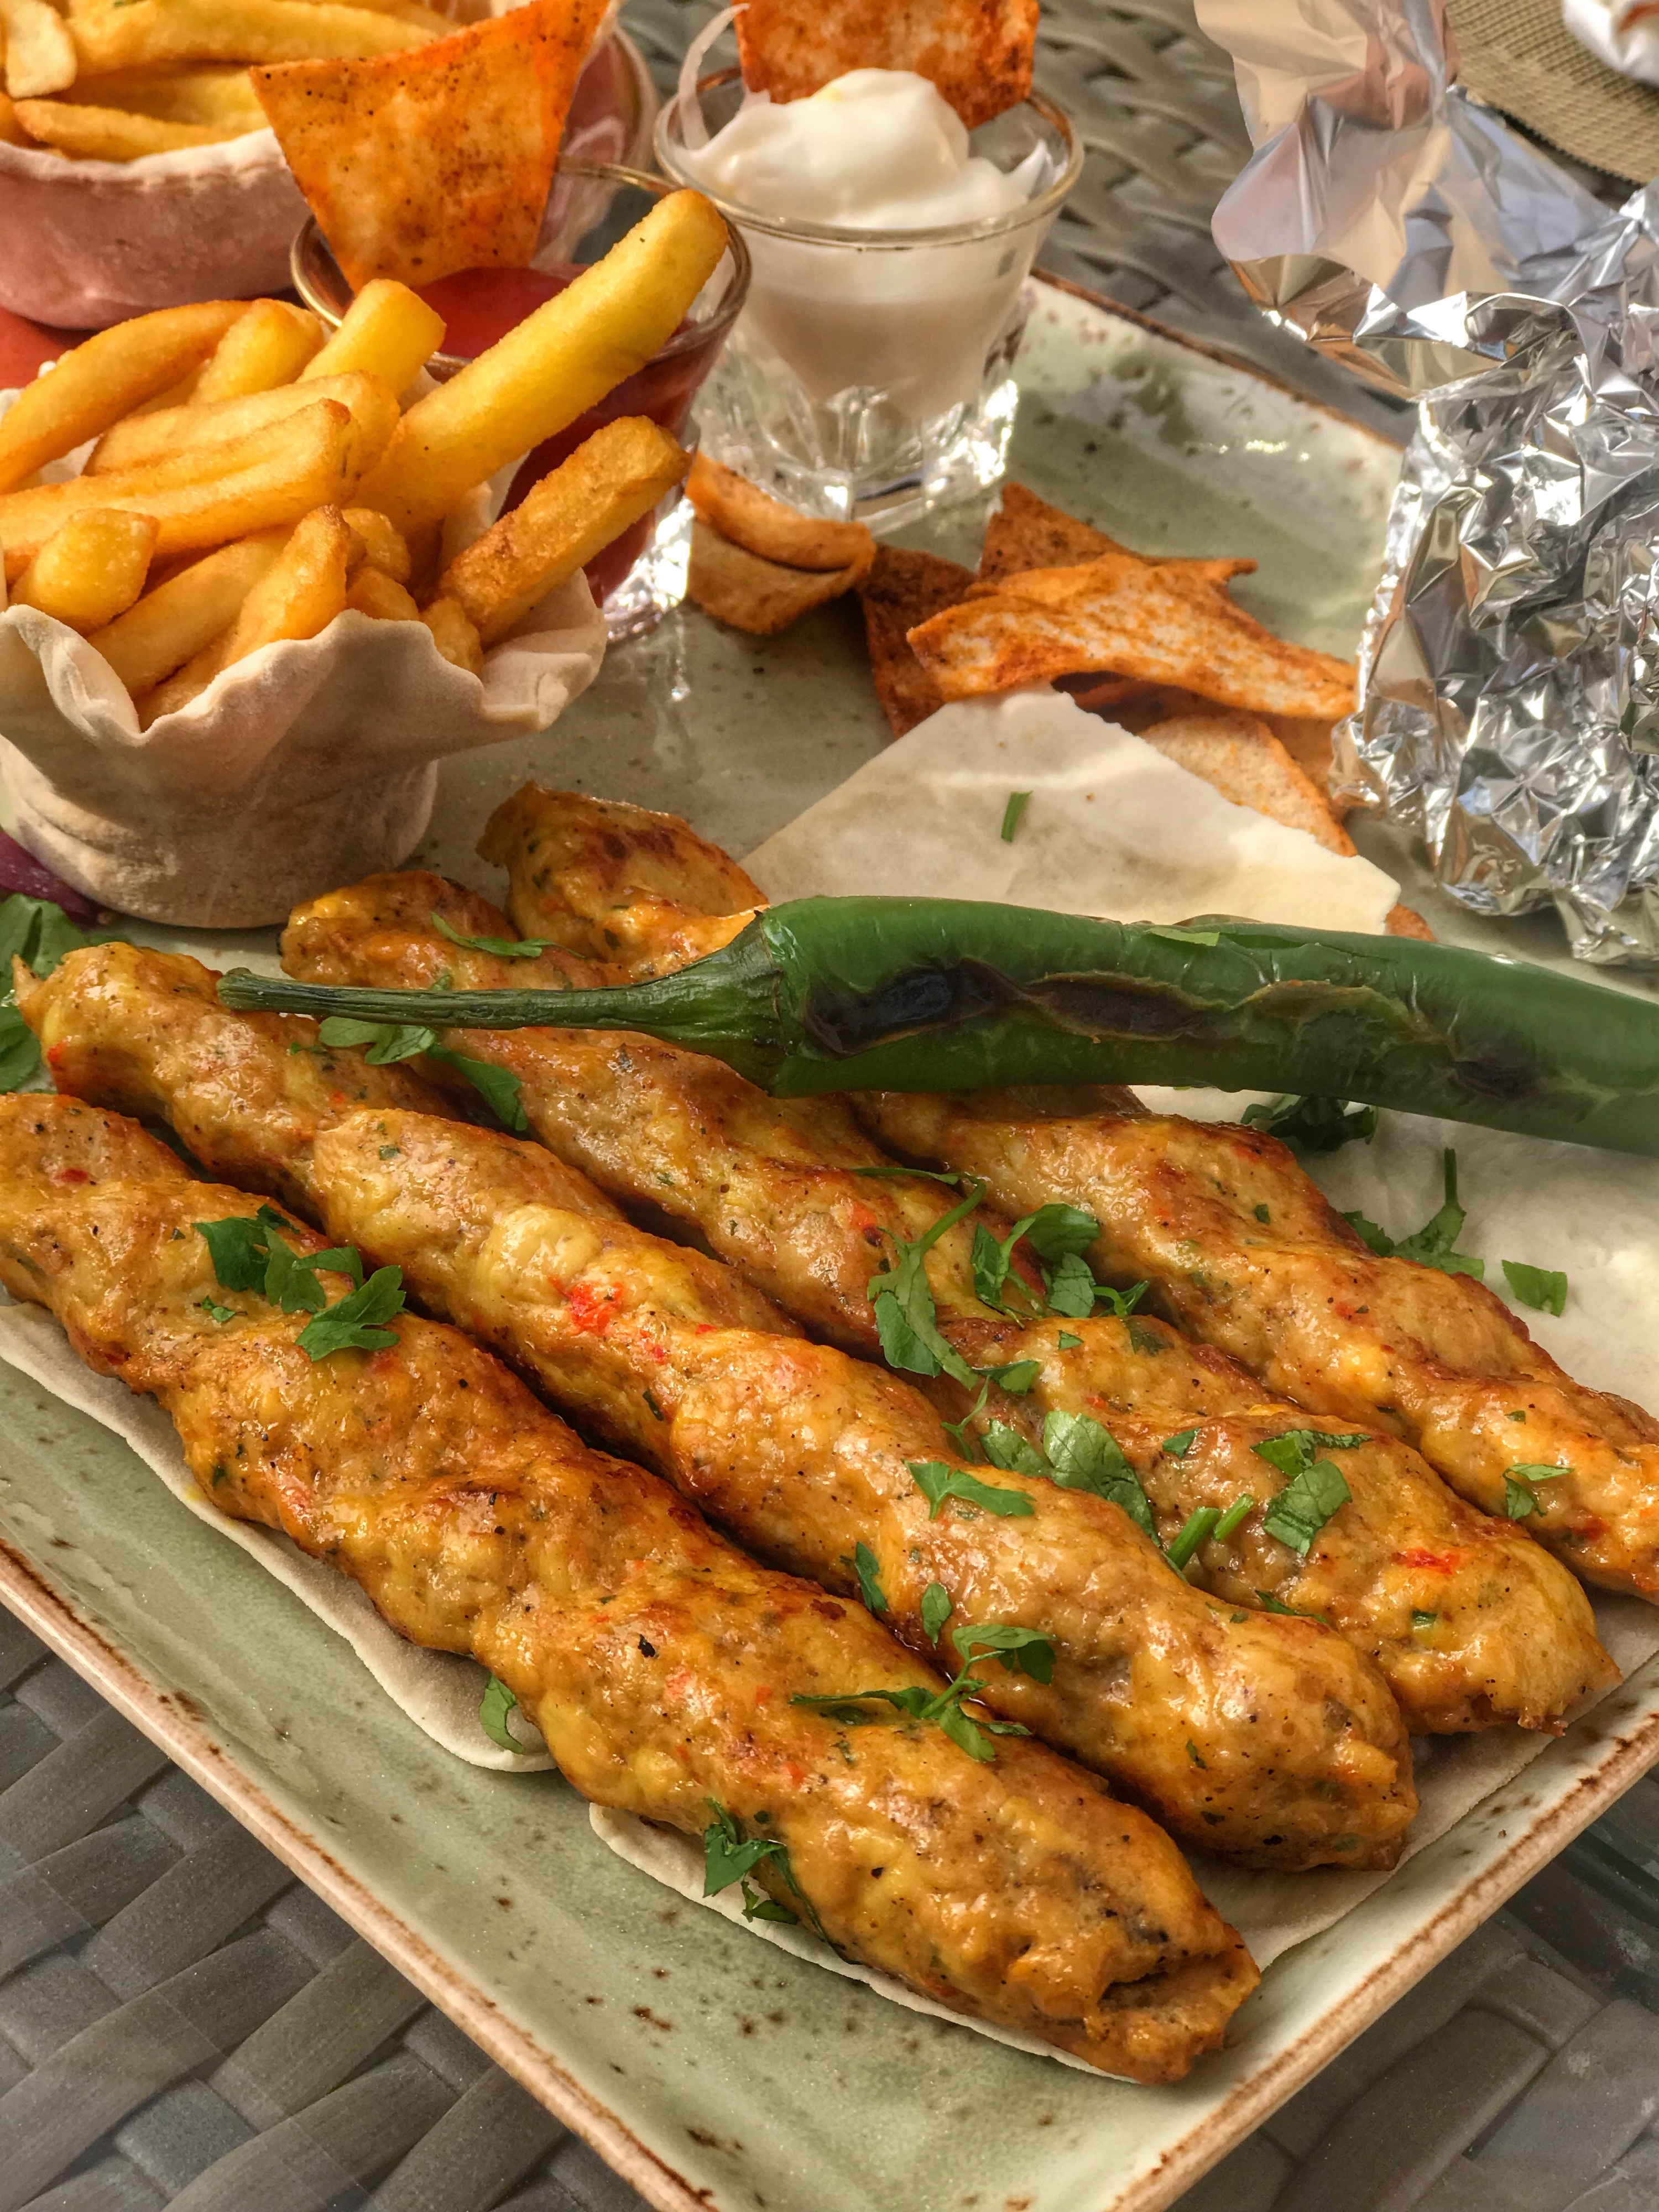 Chicken kebab at The Pearl | Visit Qatar | Doha, the capital of Qatar is located in the Middle East and the World Cup 2022 location. Find out how I spent 4 days on my visit to Qatar | Travel Guide & Tips | Elle Blonde Luxury Lifestyle Destination Blog